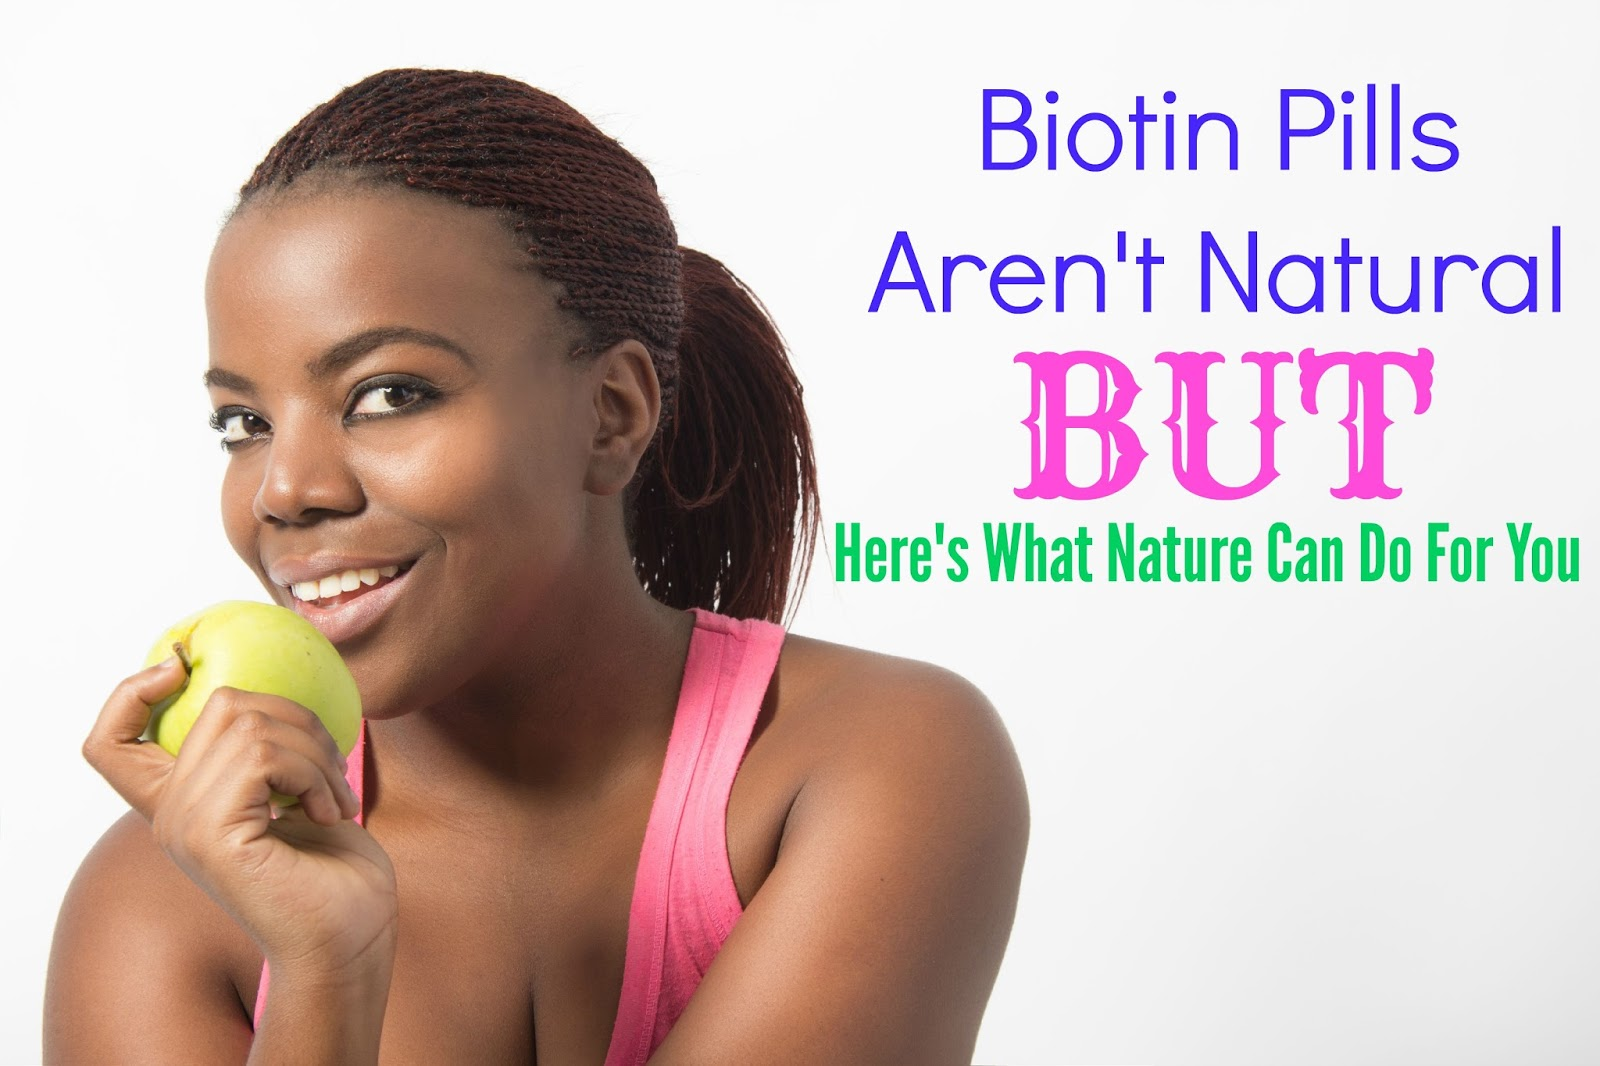 Biotin Pills Aren't Natural But Here's What Nature Can Do For You